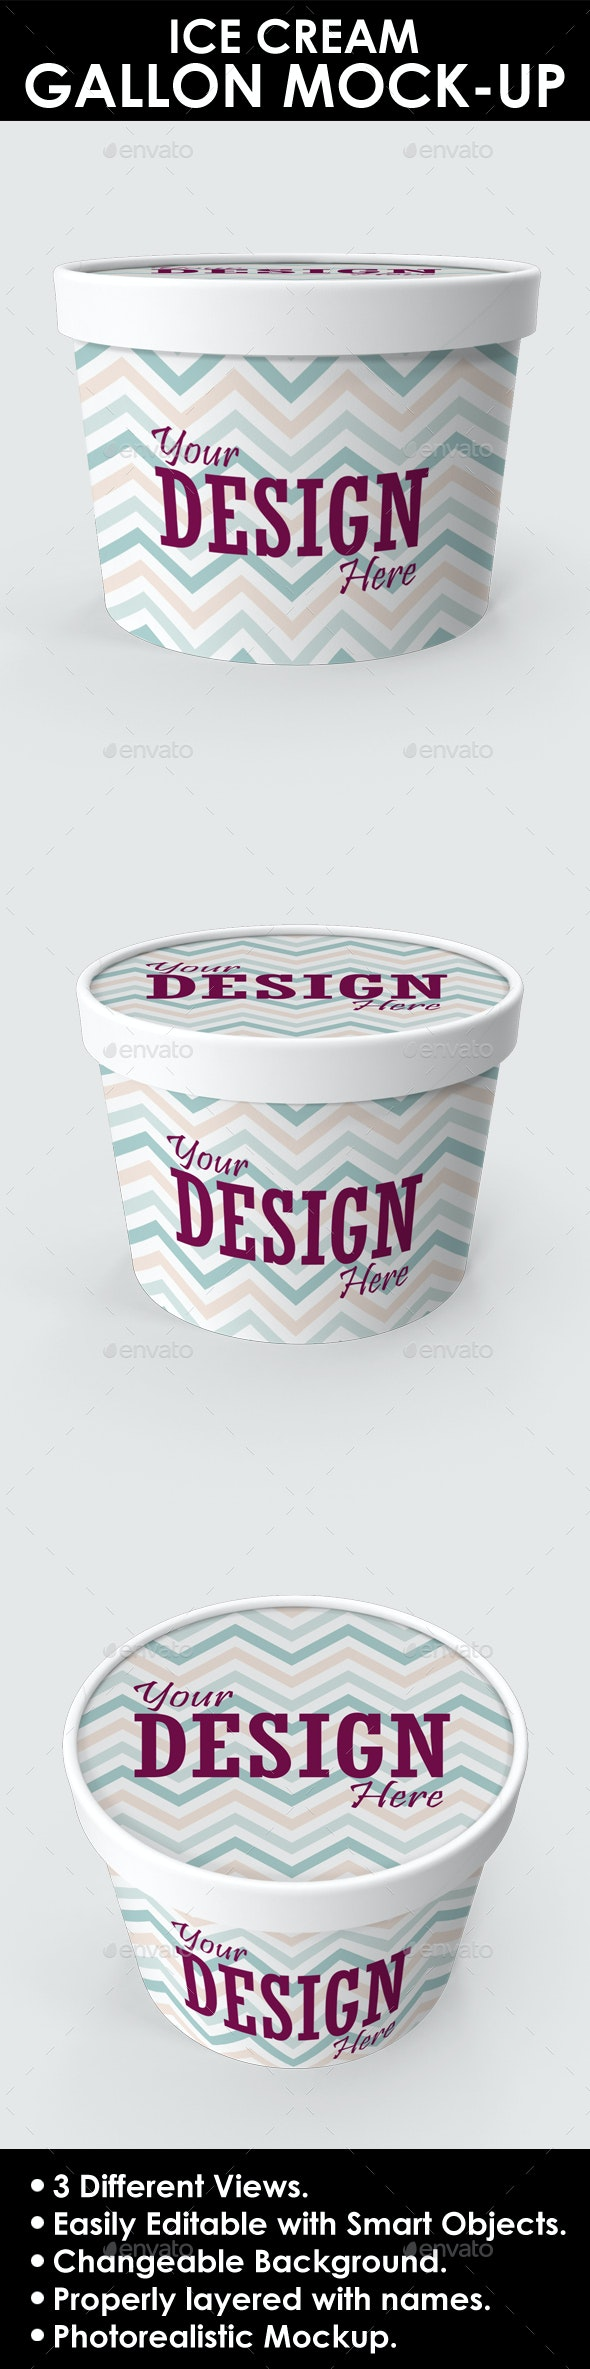 Ice Cream Gallon / Container PSD Mock-up - Product Mock-Ups Graphics